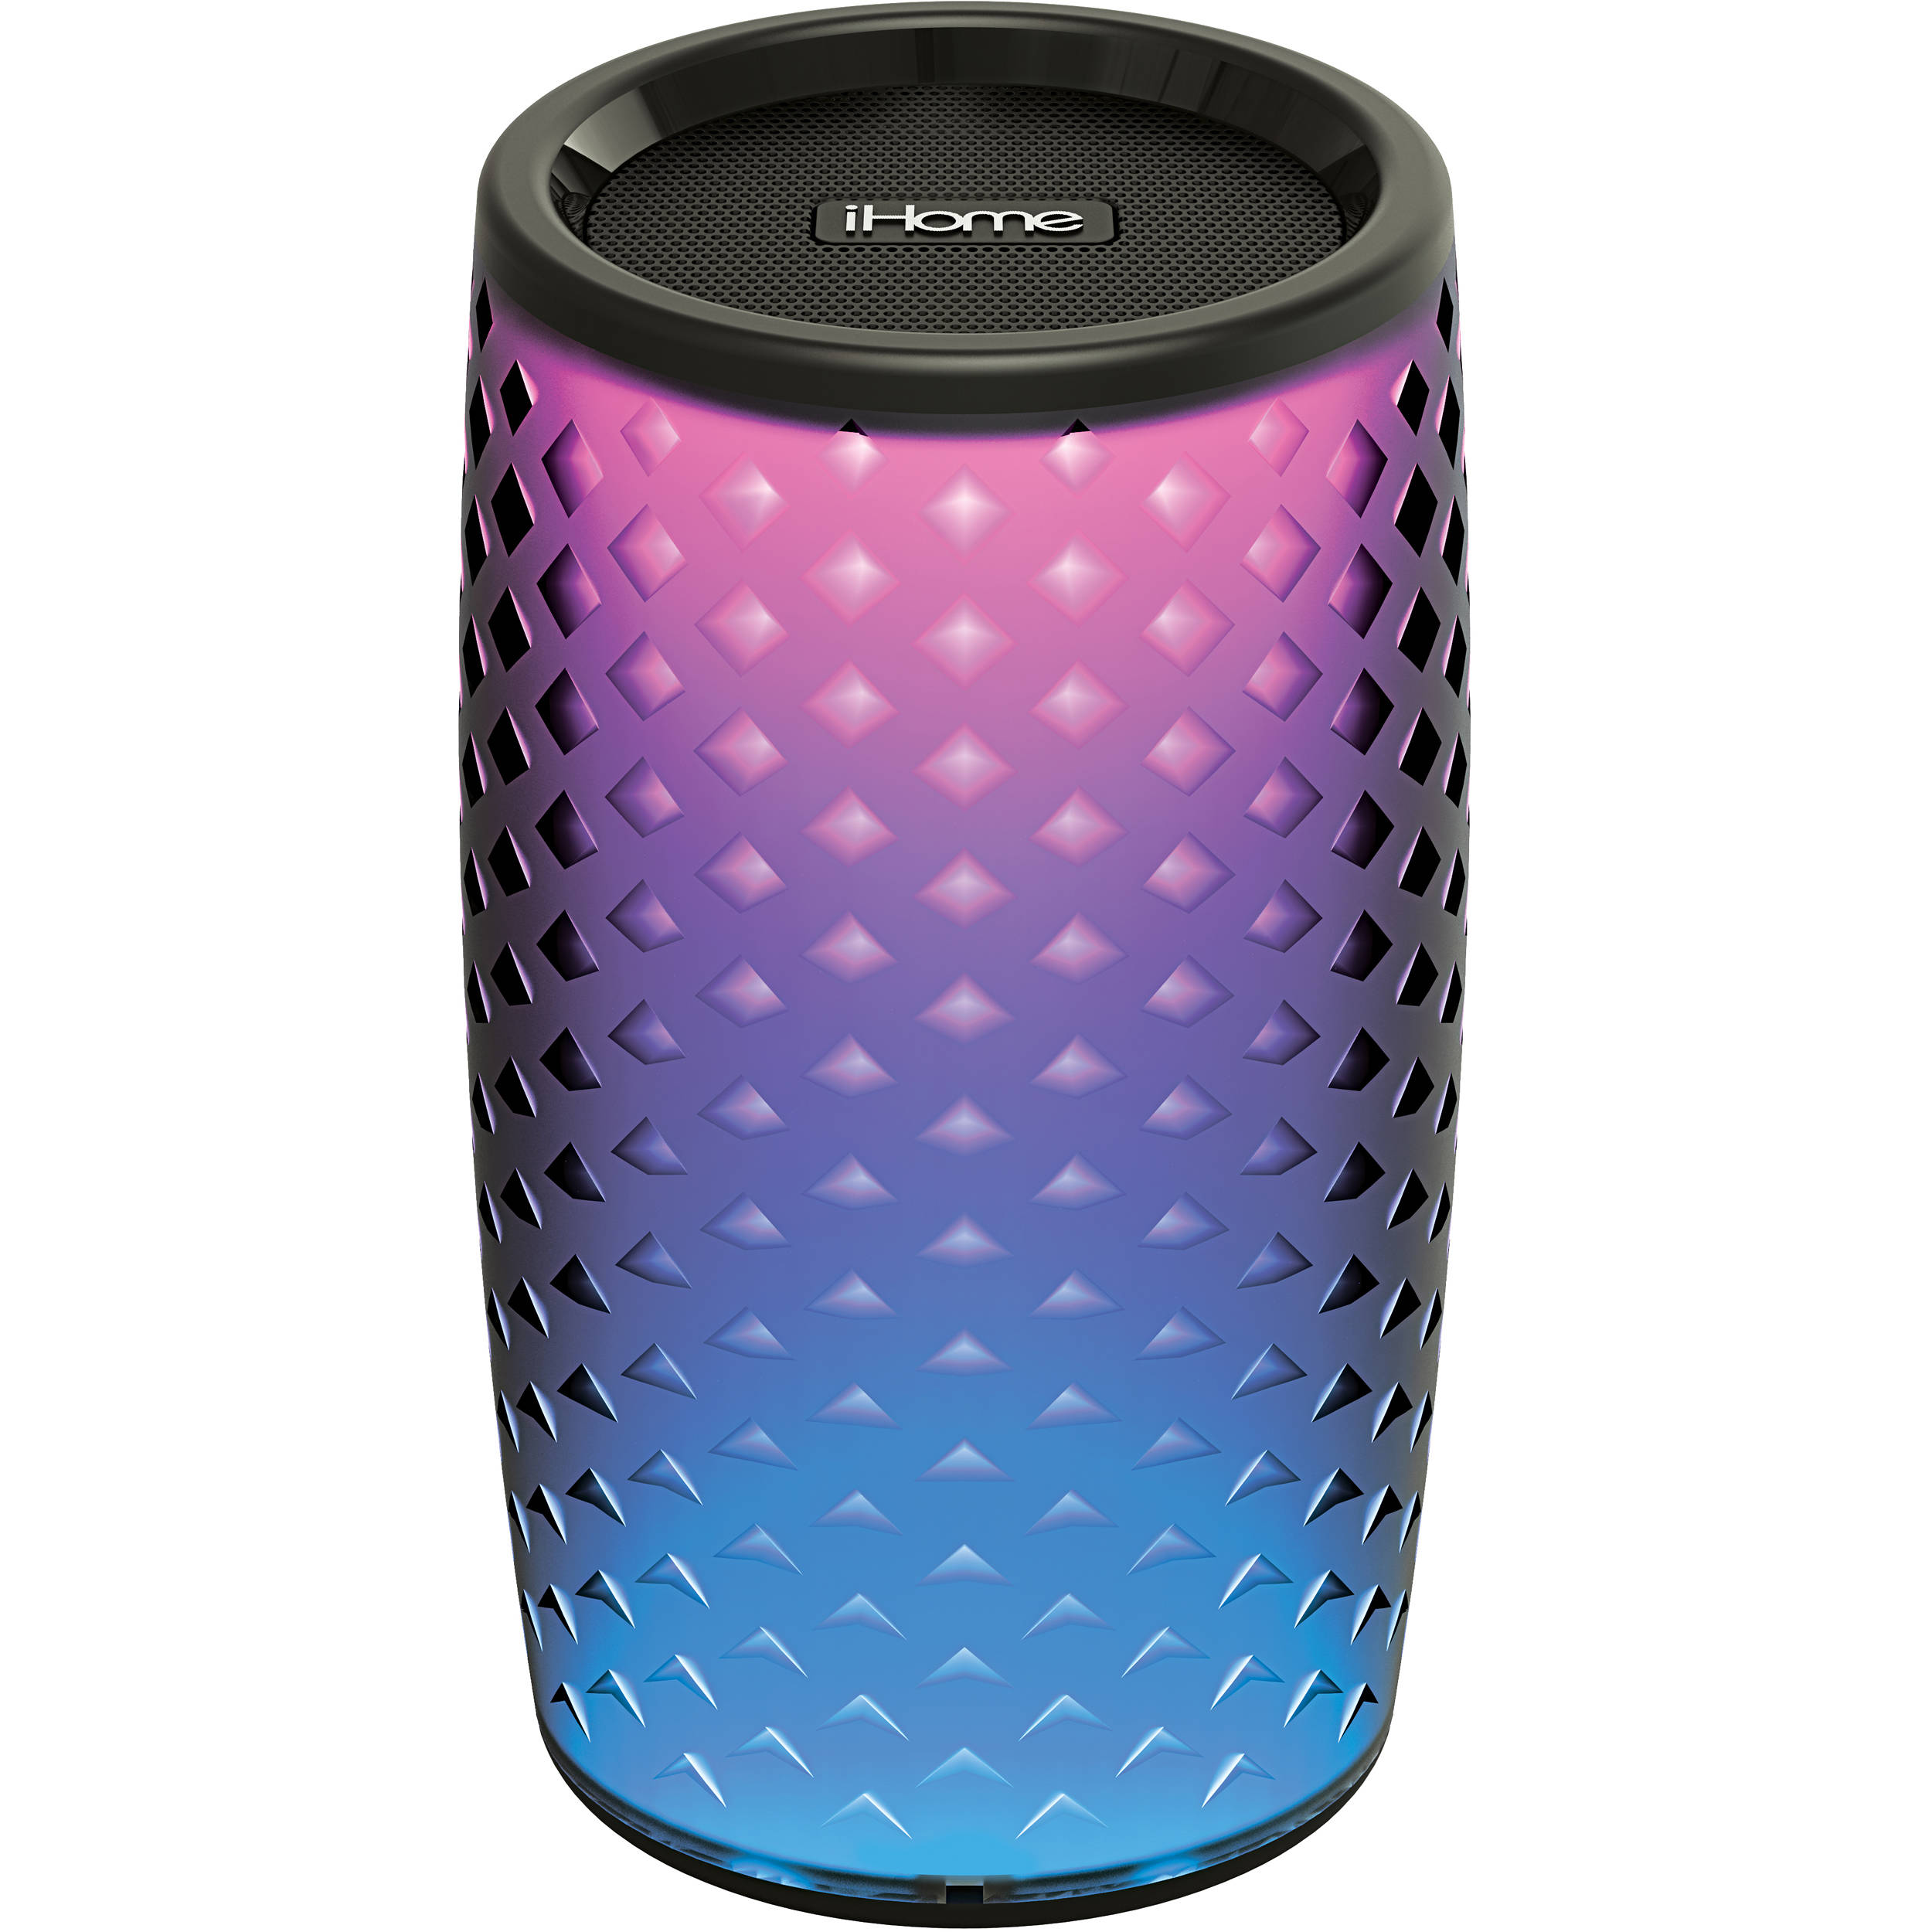 iHome iBT8v8B Color Changing Rechargeable Bluetooth Speaker